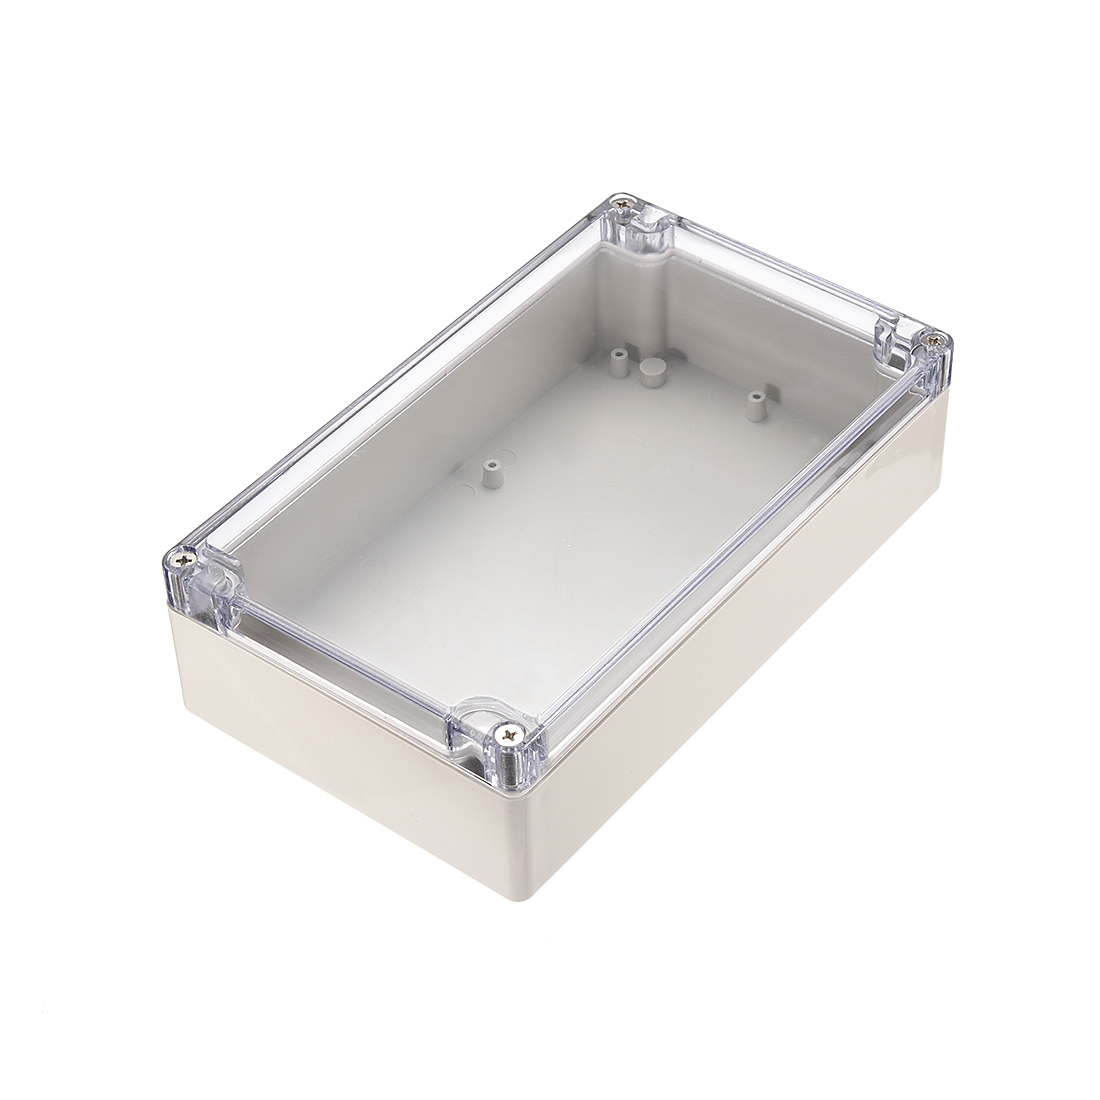 "7.9""x4.7""x2.2""(200mmx120mmx56mm) ABS Junction Box Universal Project Enclosure w PC Transparent Cover"